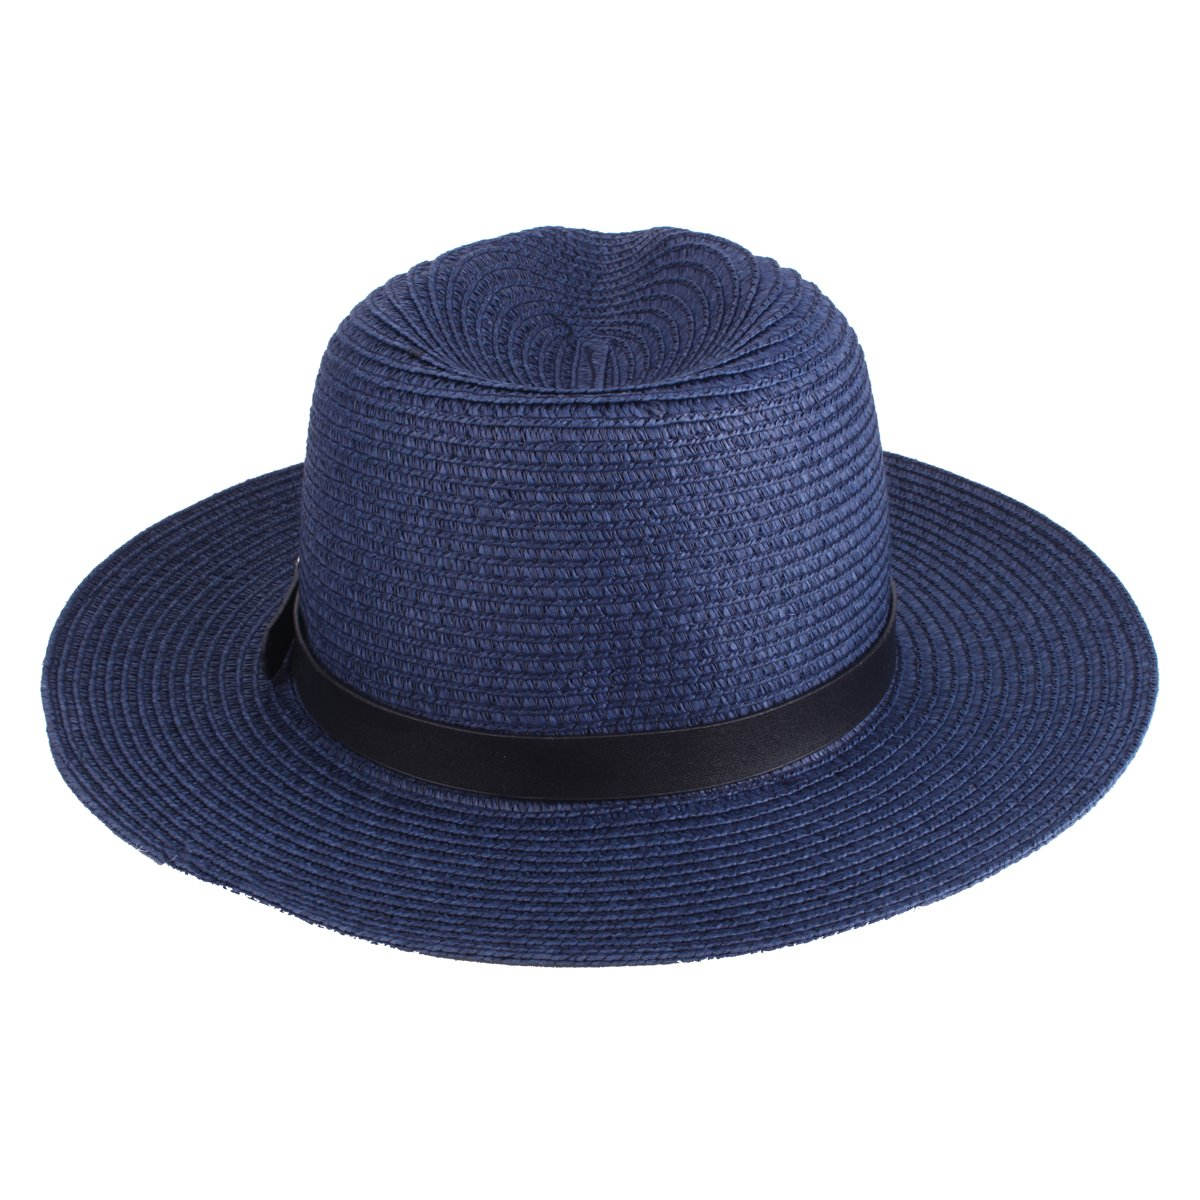 Stroh Panamah/üte Unisex Beach Sun Hats UV Protection Foldable Paper Weaved Hats with PU Leather Belt